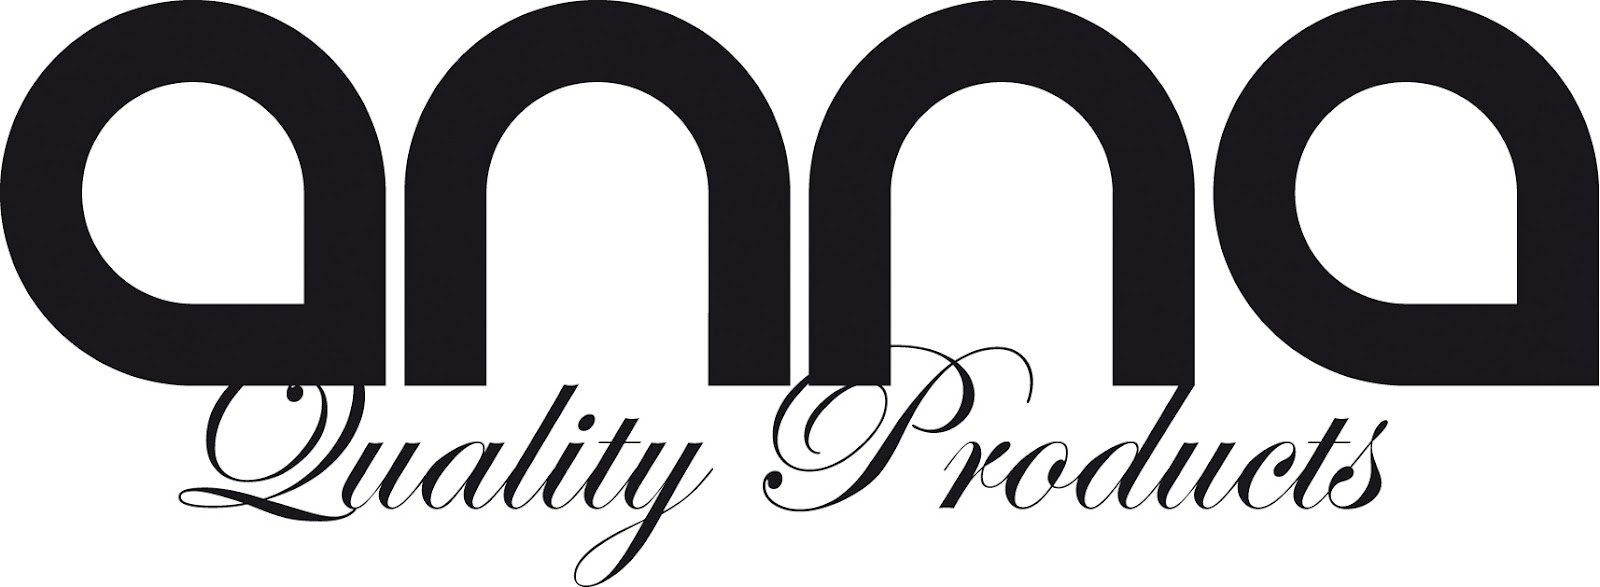 Anna Quality Products es la marca que identifica una selecta, variada y, sin duda, original serie de PRODUCTOS ARTESANOS (buena parte de ellos distinguidos con el sello ECOLGICO) concebidos y destinados a satisfacer las inquietudes de los gourmets ms vidos de texturas, aromas y gustos, tanto de antao como novedosos, de la mxima CALIDAD NATURAL, rehuyendo la inclusin de cualquier tipo de aditivo o sucedneo en sus procesados.